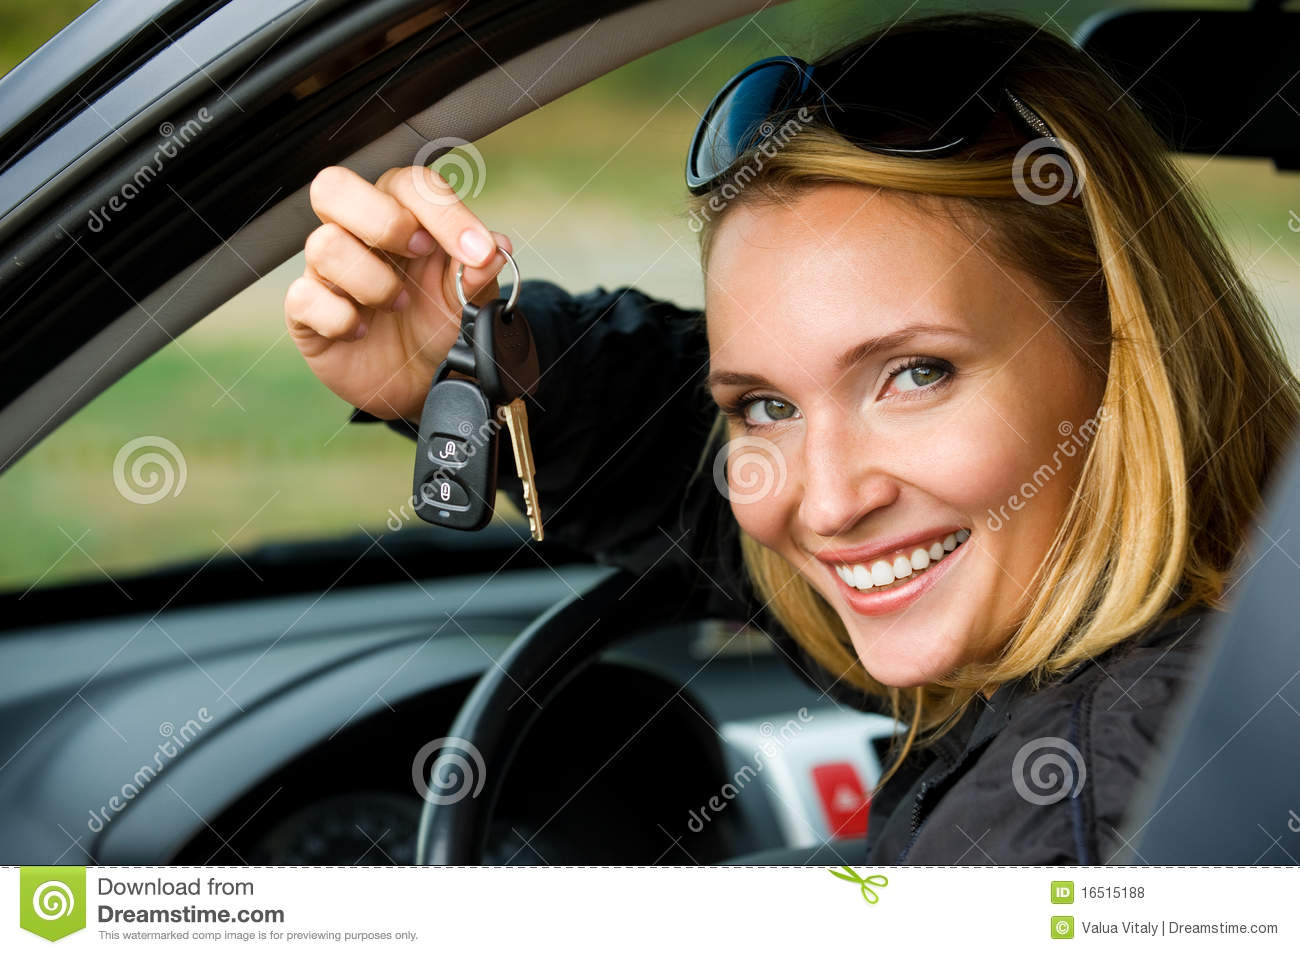 Woman shows keys from the car